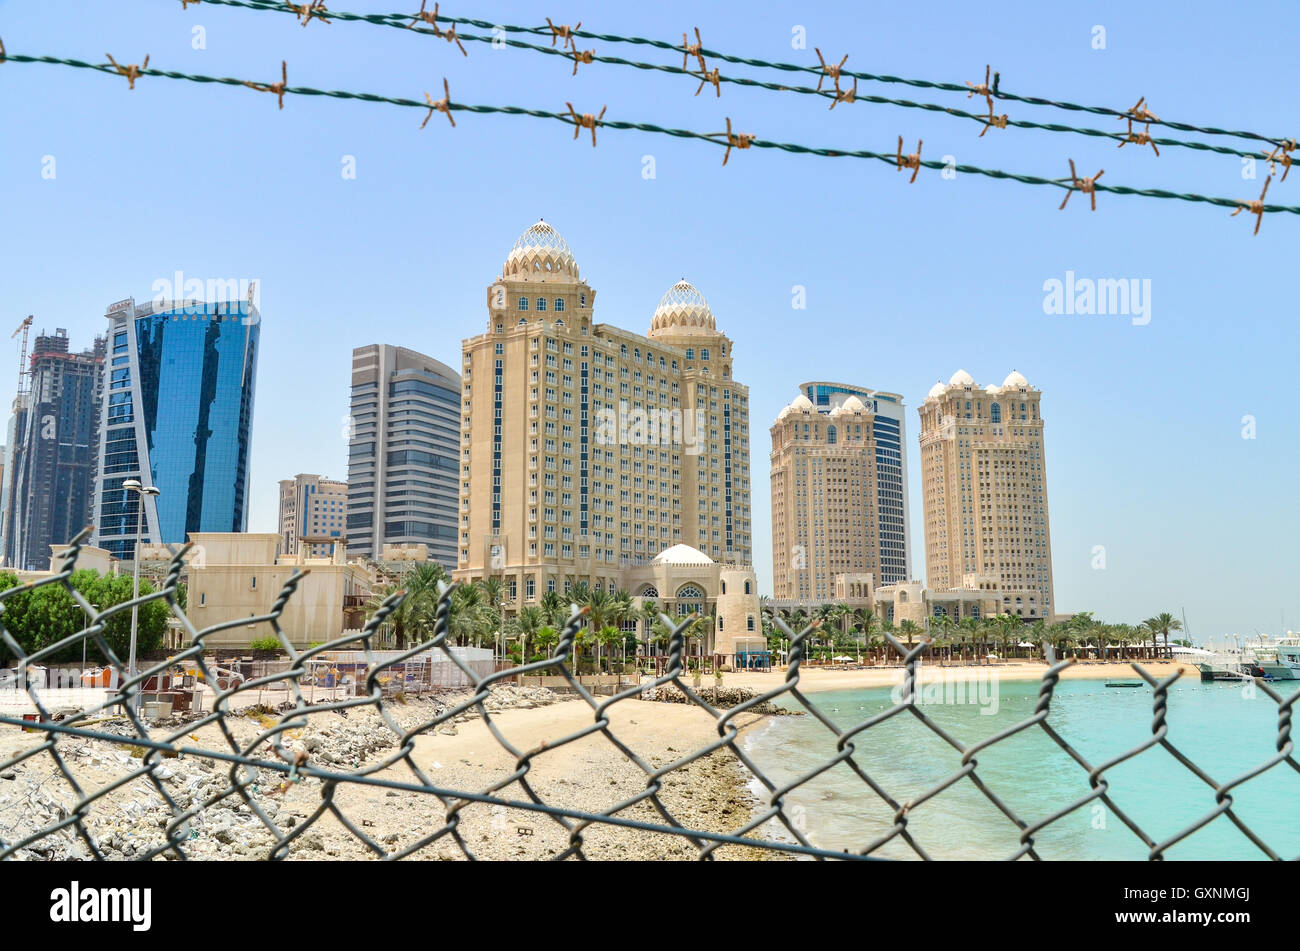 Fences and barbed wire in front of the skyscrapers of Doha, Qatar - Stock Image